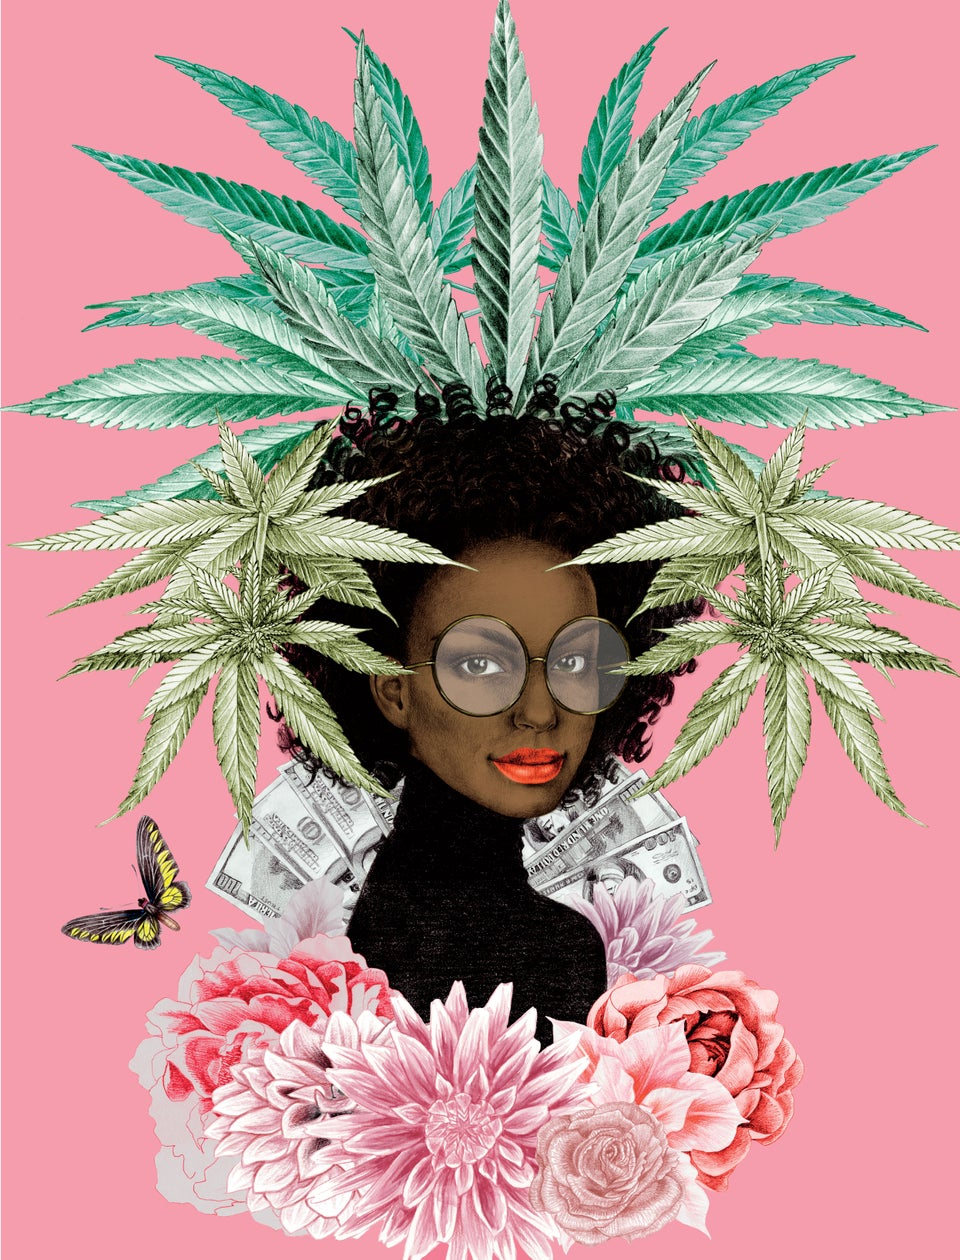 Black Women Know That The Stakes Are High In The Cannabis Industry, Here's Why They're Joining It Anyway